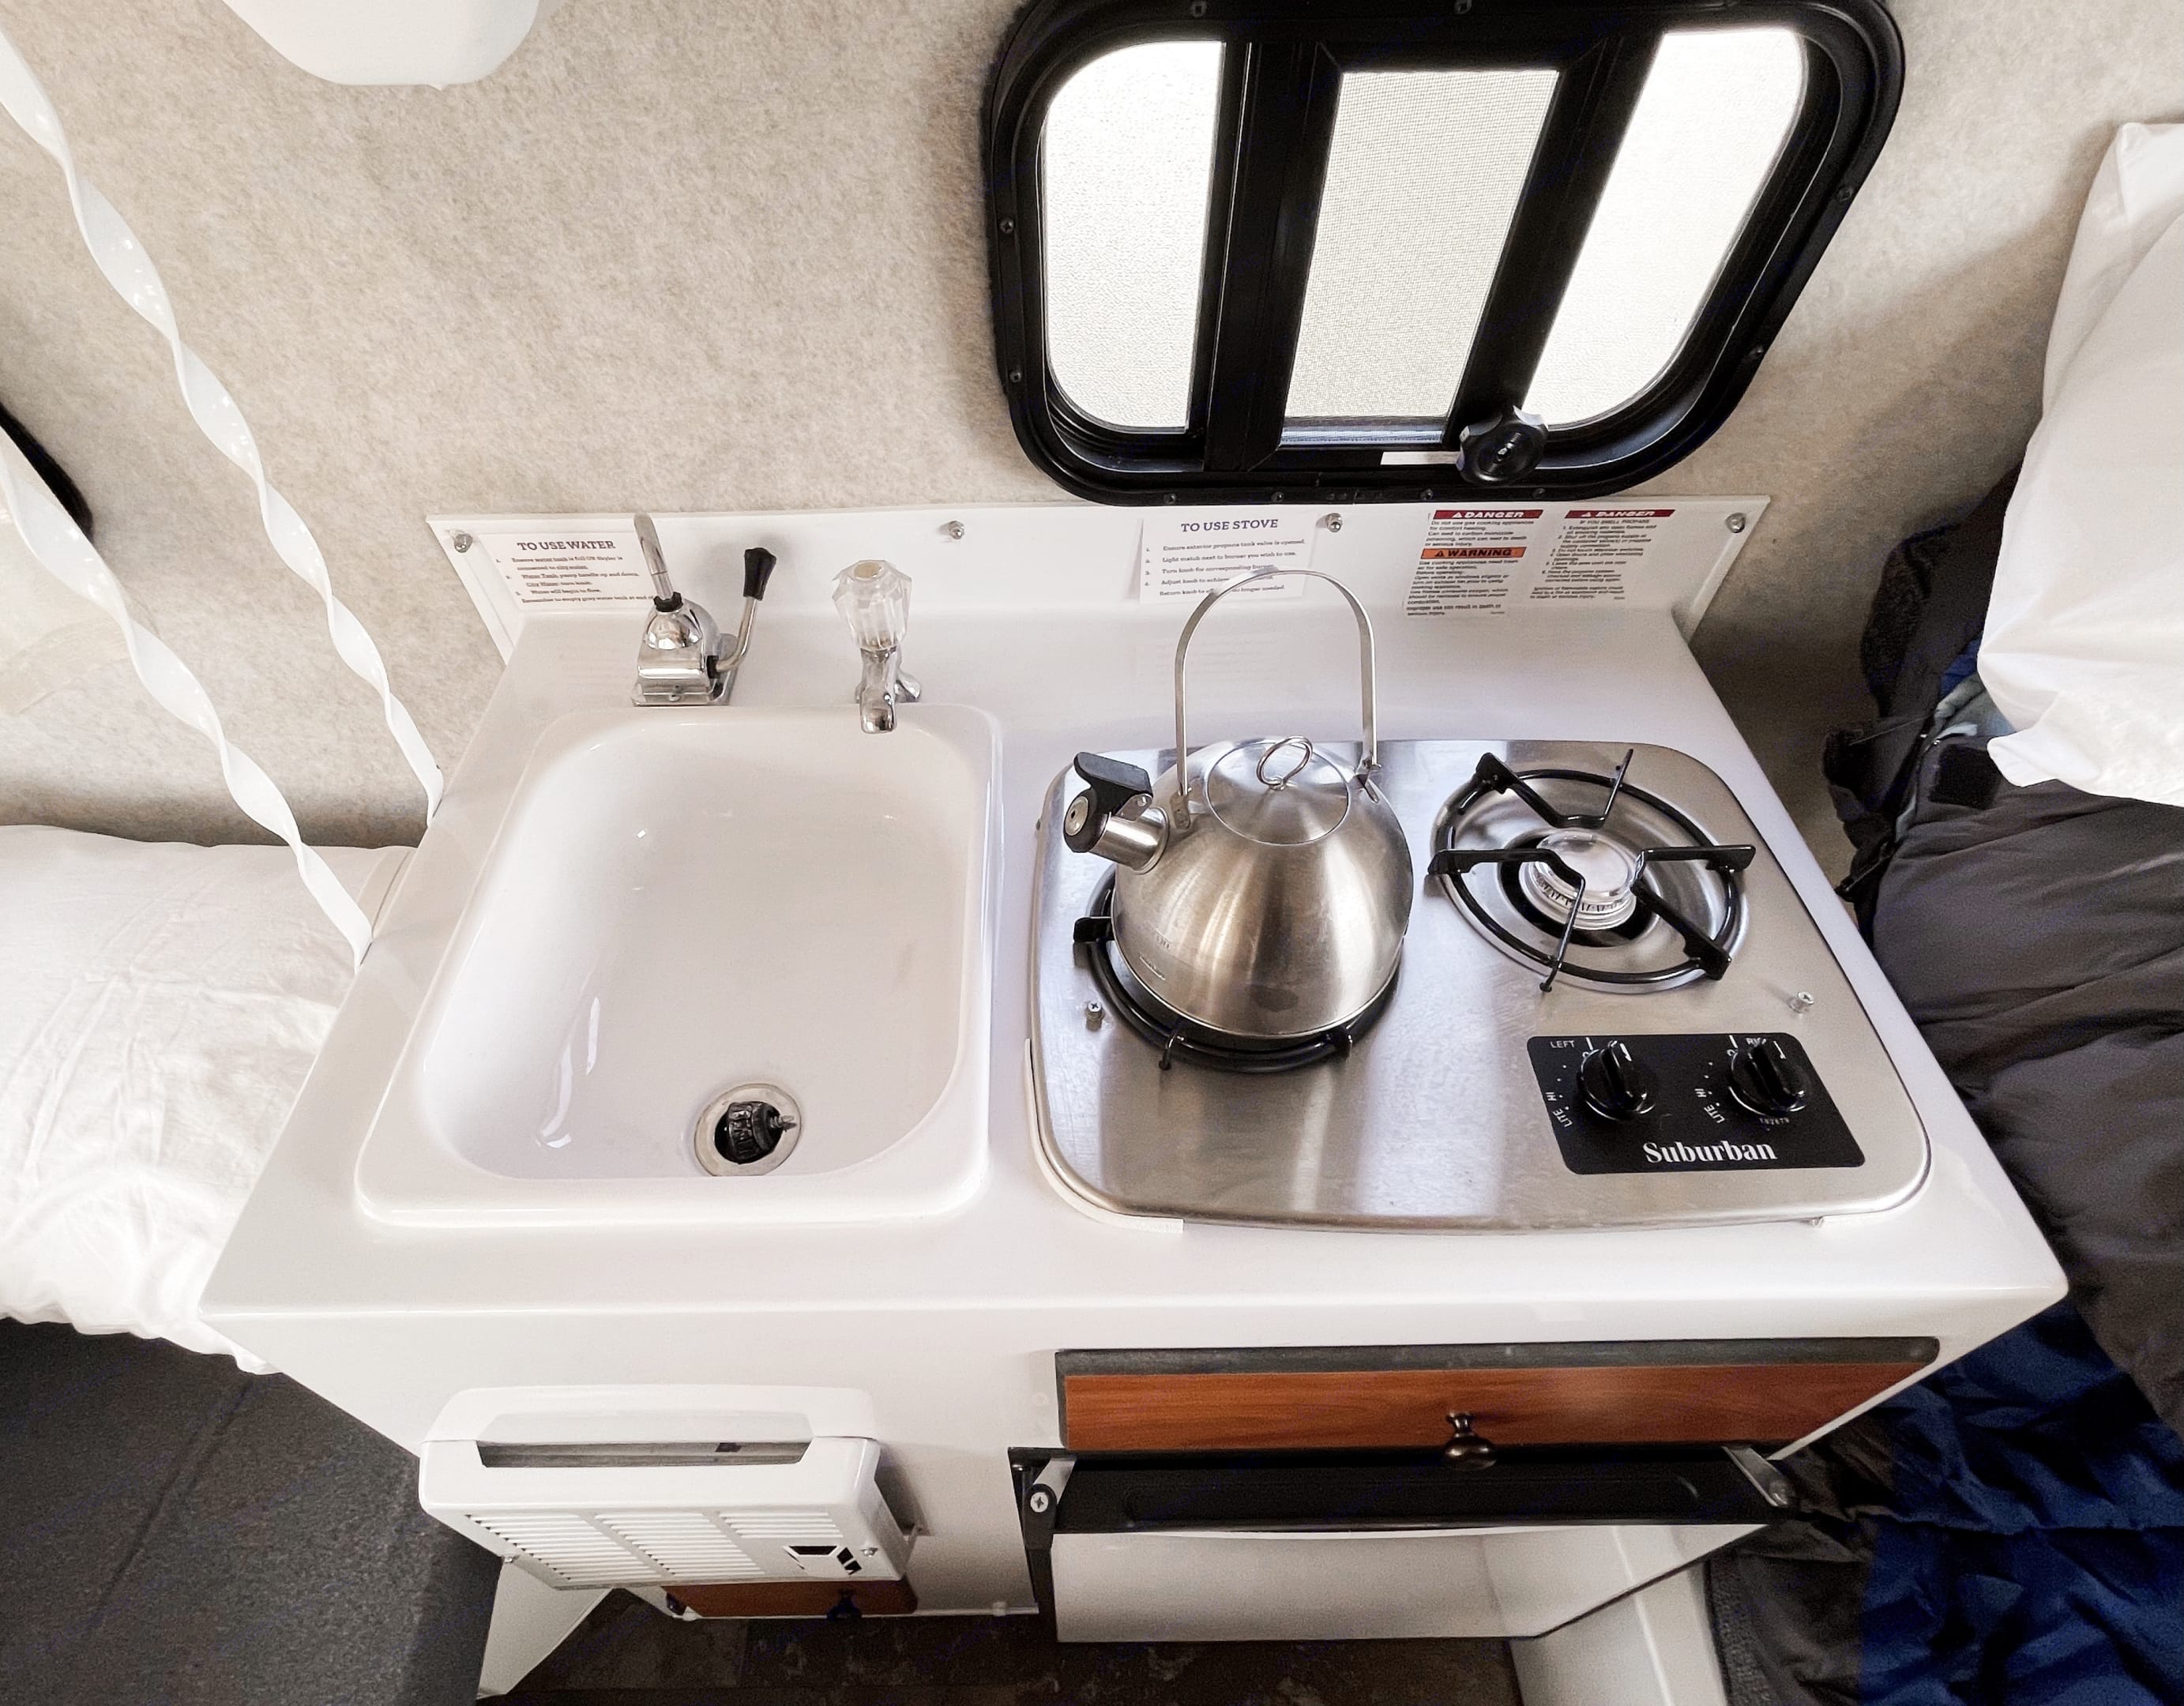 Skyler the 13' Scamp Travel Trailer has a sink, stove and refrigerator.. Scamp 13' 2018